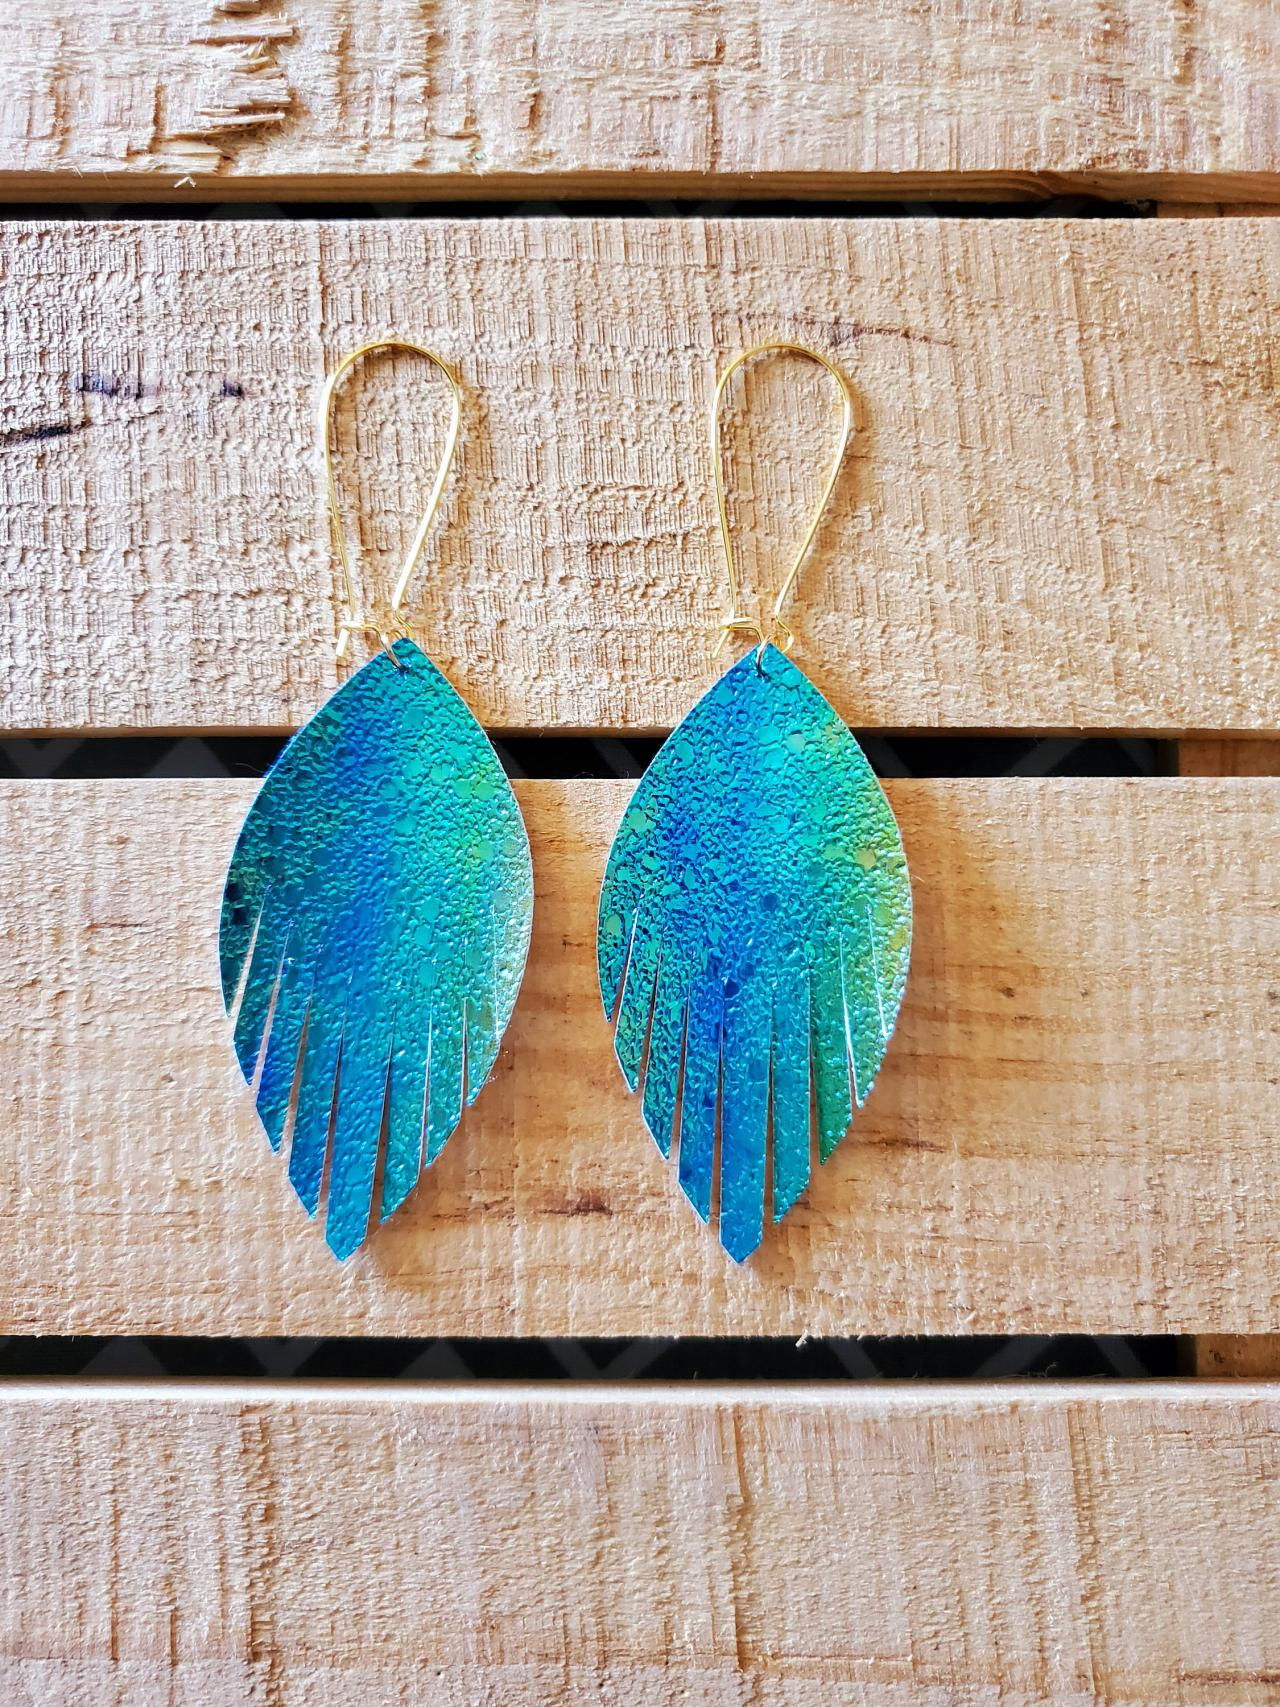 Rainbow Metallic Feather Earrings, Blue and Green Leather Earrings, Trendy Earrings, Lightweight Jewelry, Boho Chic Dangles Earrings, Gift